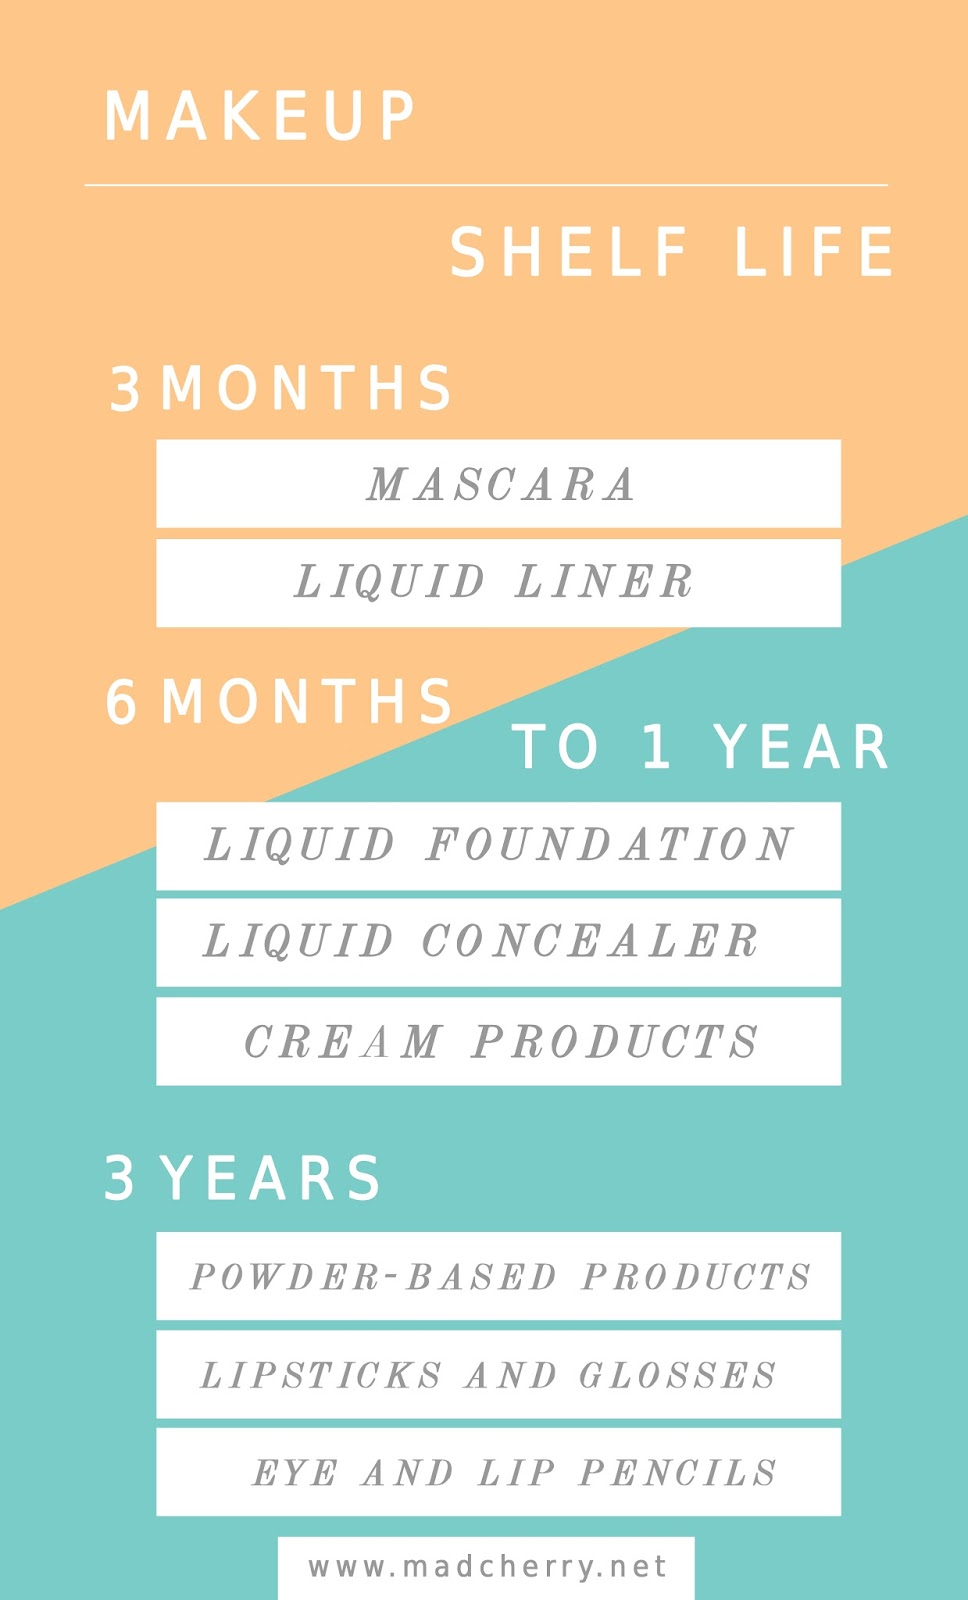 It's hard to put a makeup product inside a trash bin especially when you shelled out a lot of money for it. But if it's for your health and skin's welfare, you have to do it! There's no need to rush, though. Here's when you should throw away beauty products.